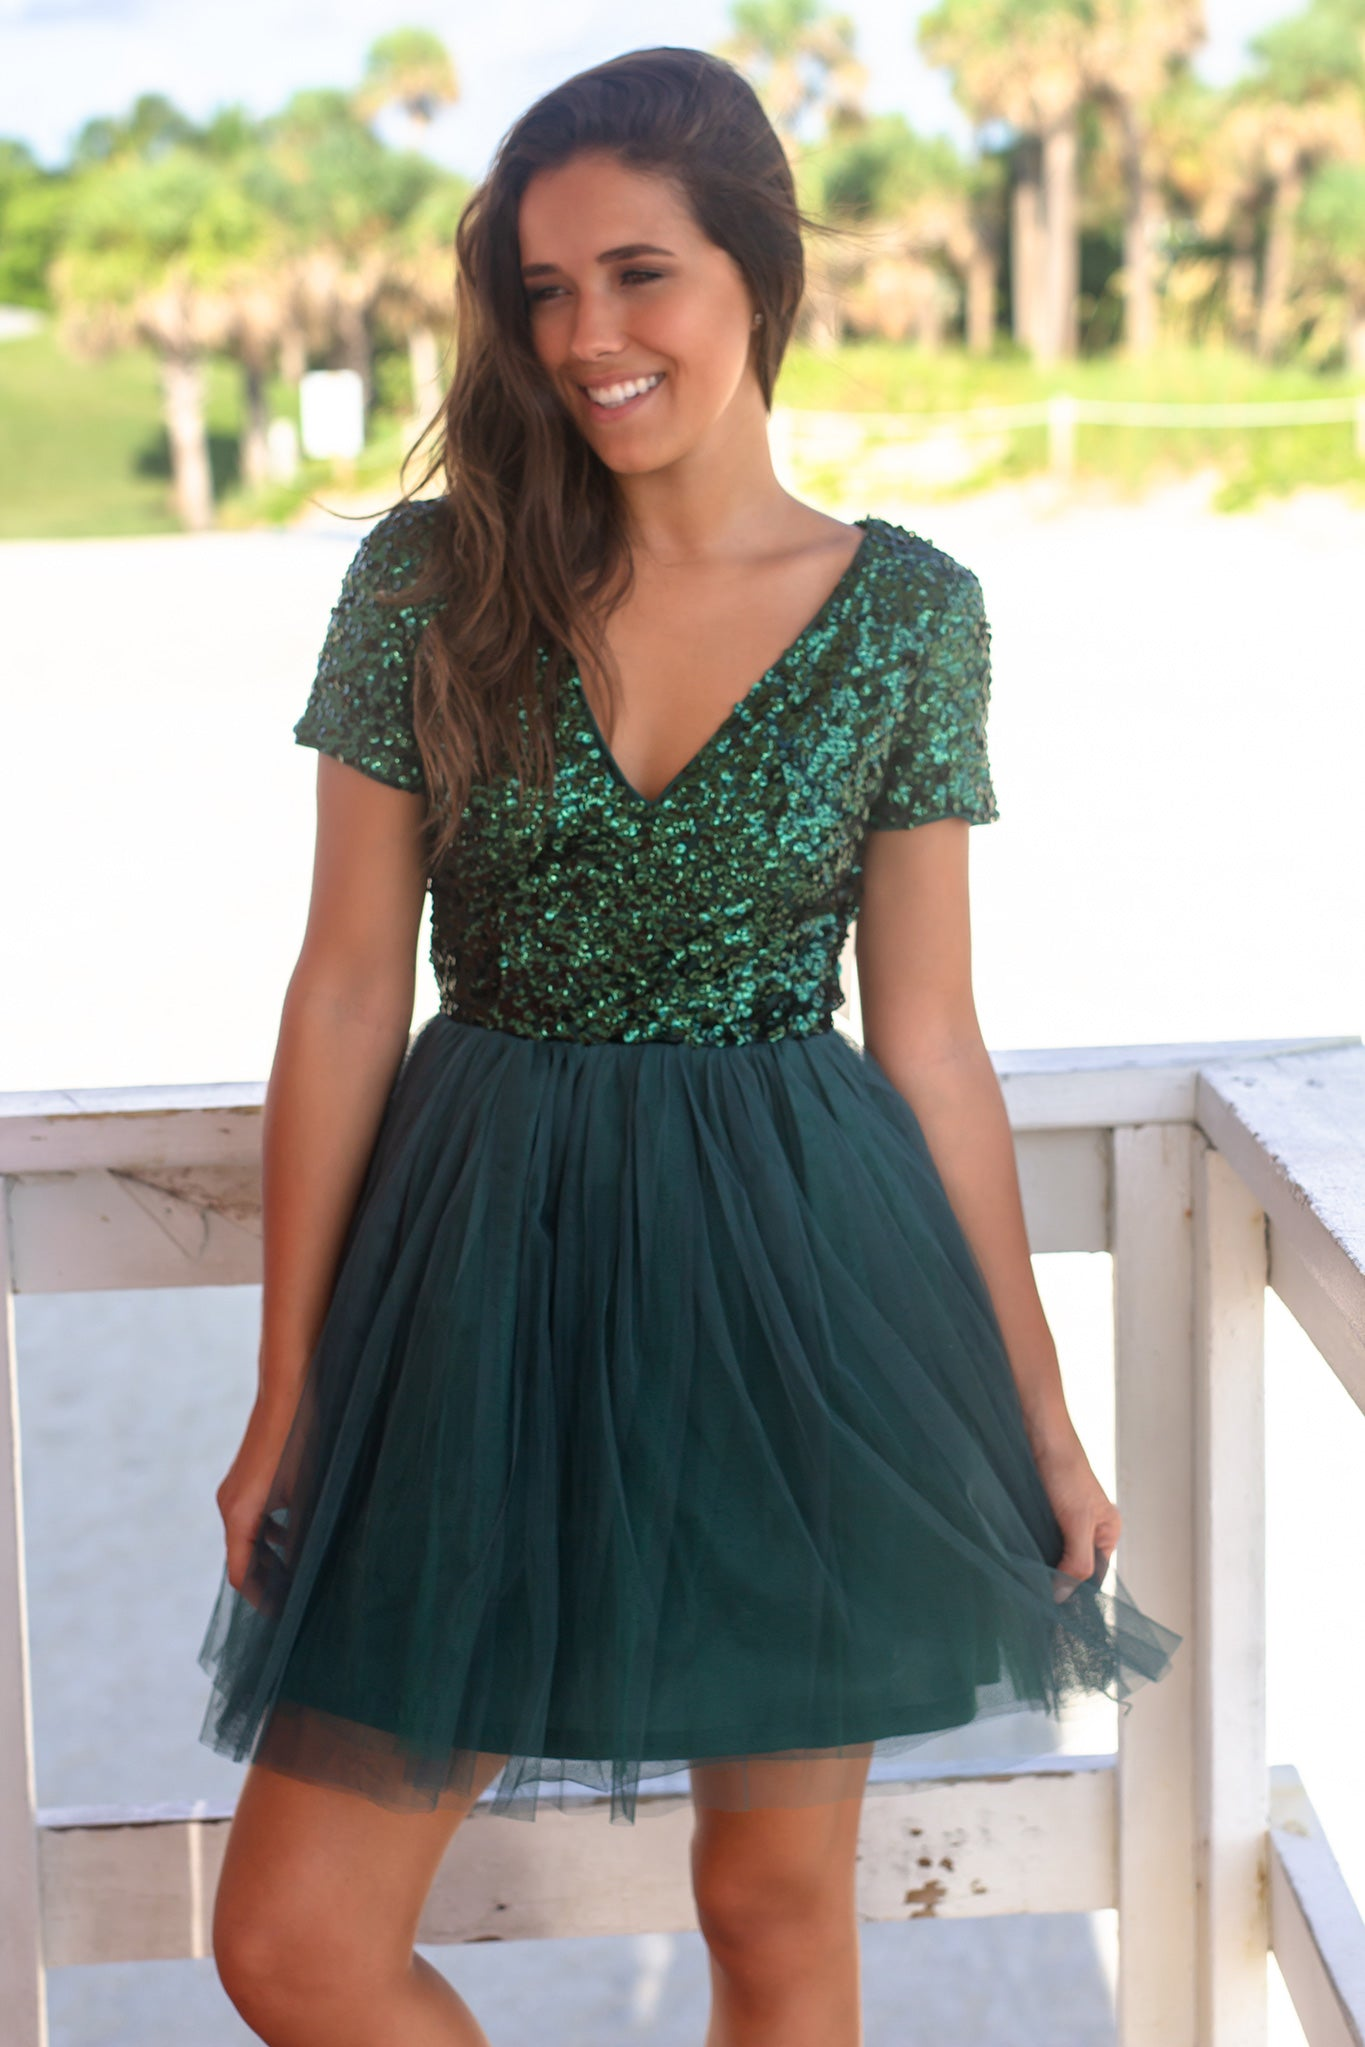 Hunter Green Sequin Top Short Dress